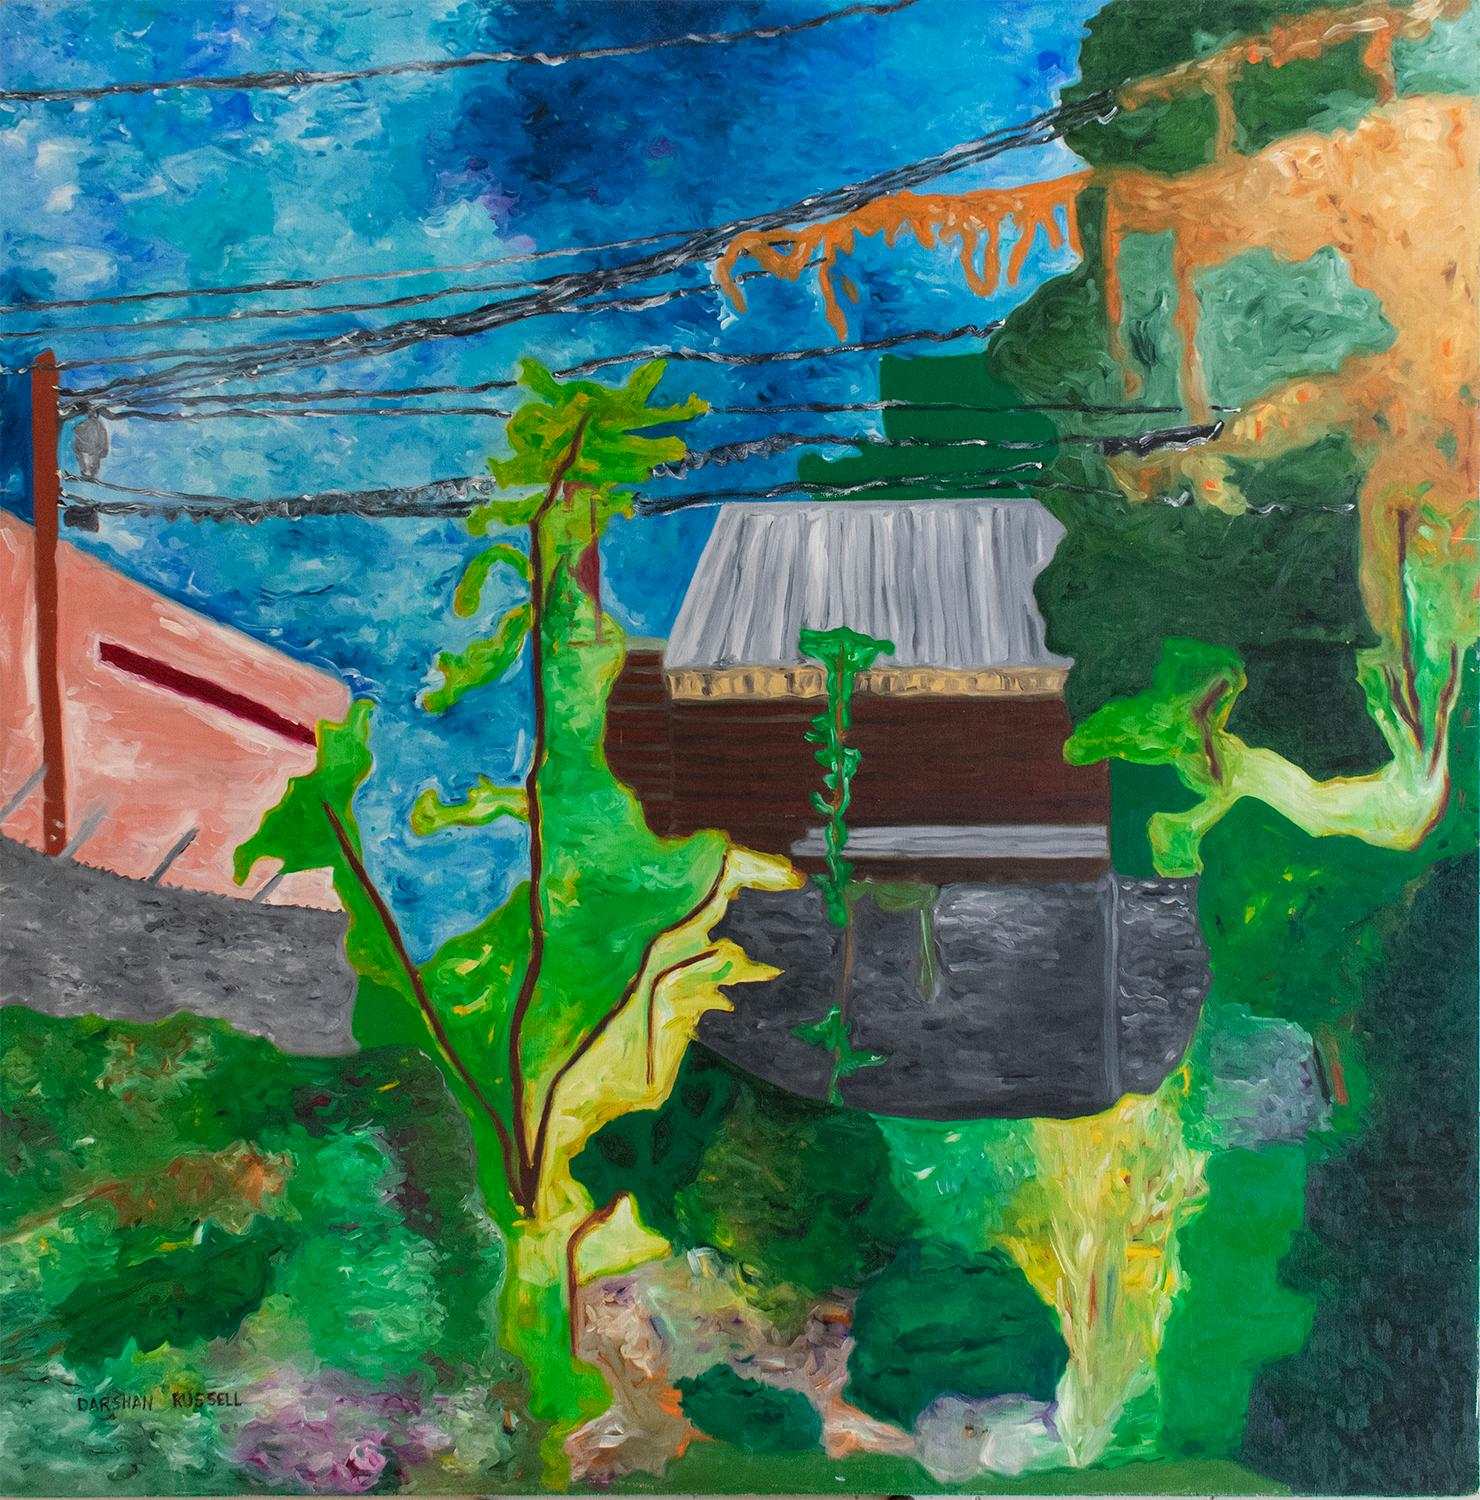 Backyard No. 4 (Abstracted Oil Landscape Painting)